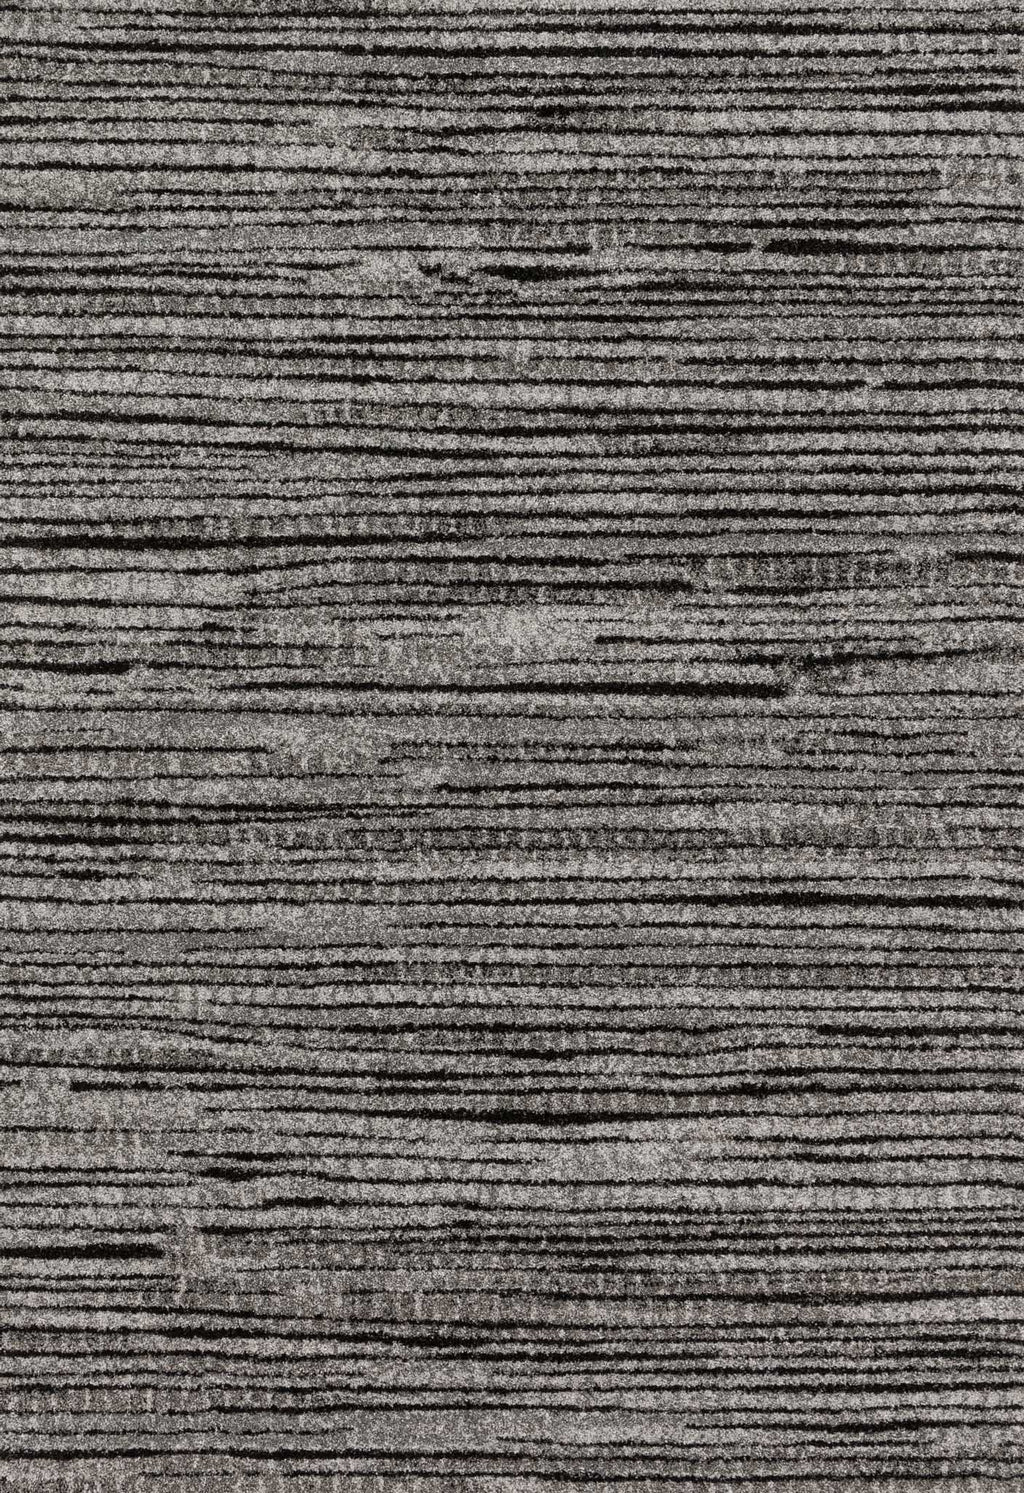 EMORY Collection Rug  in  GREY / BLACK Gray Runner Power-Loomed Polypropylene